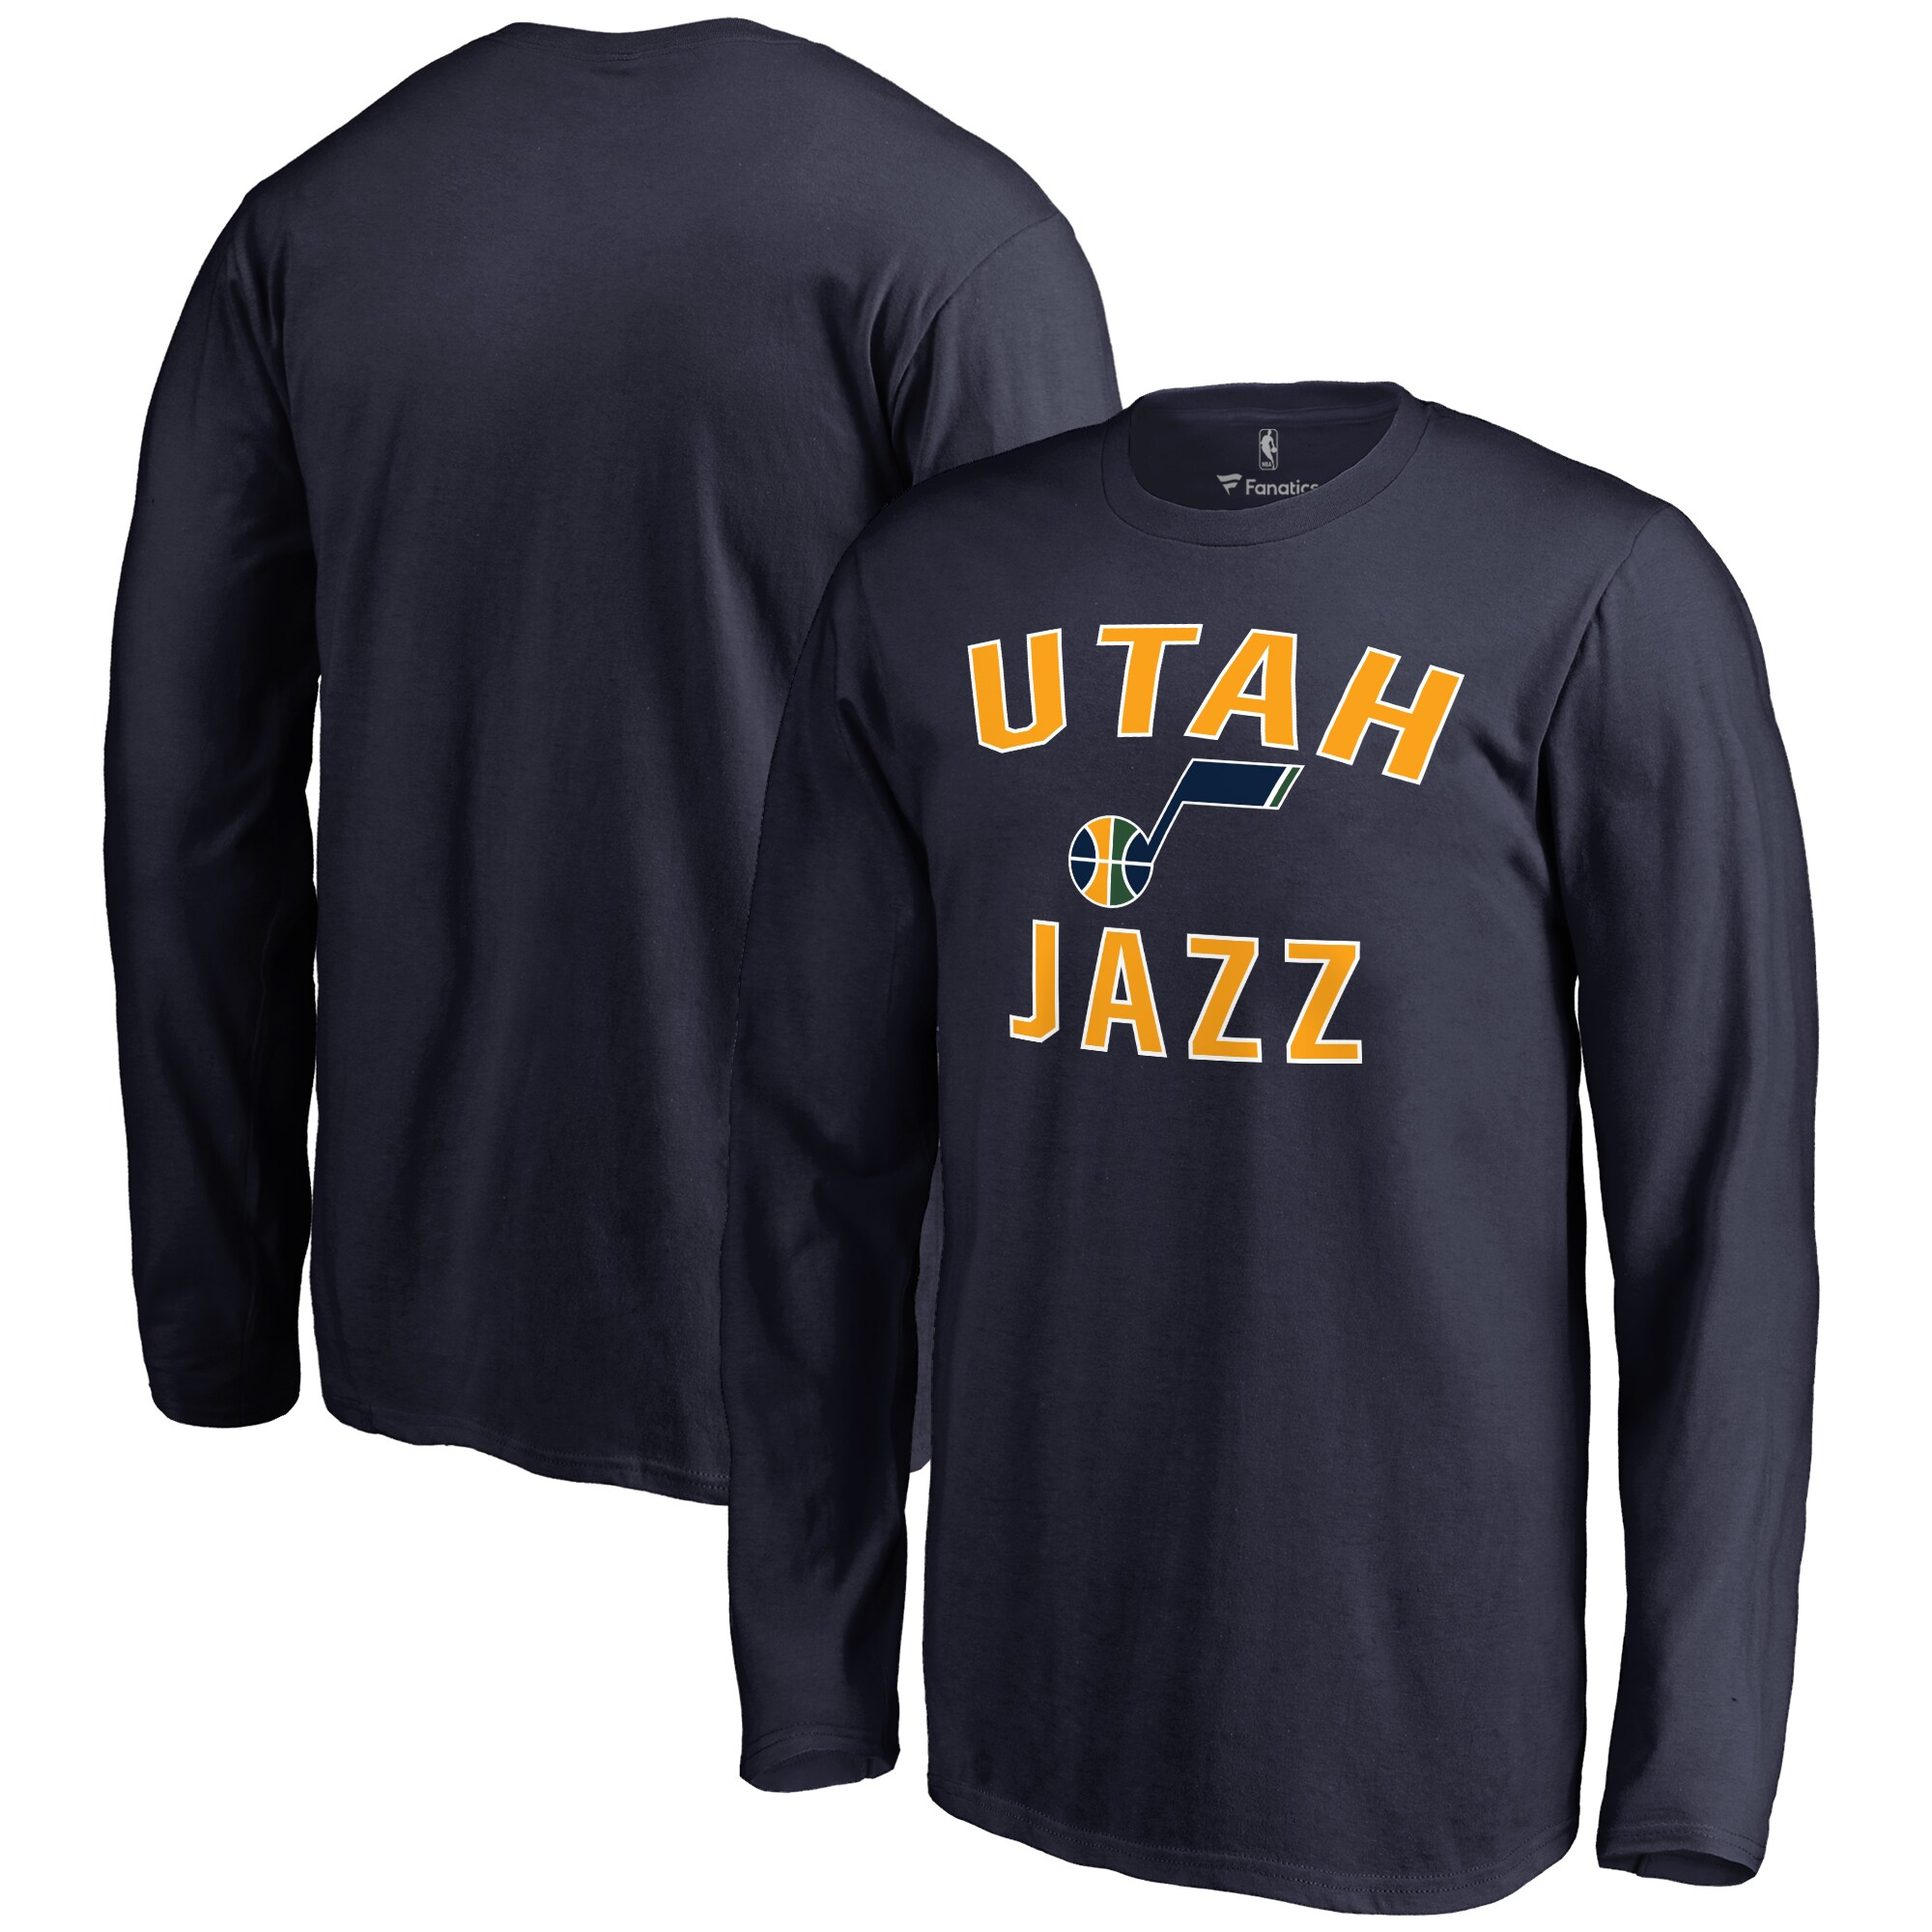 Utah Jazz Youth Victory Arch Long Sleeve T-Shirt - Navy